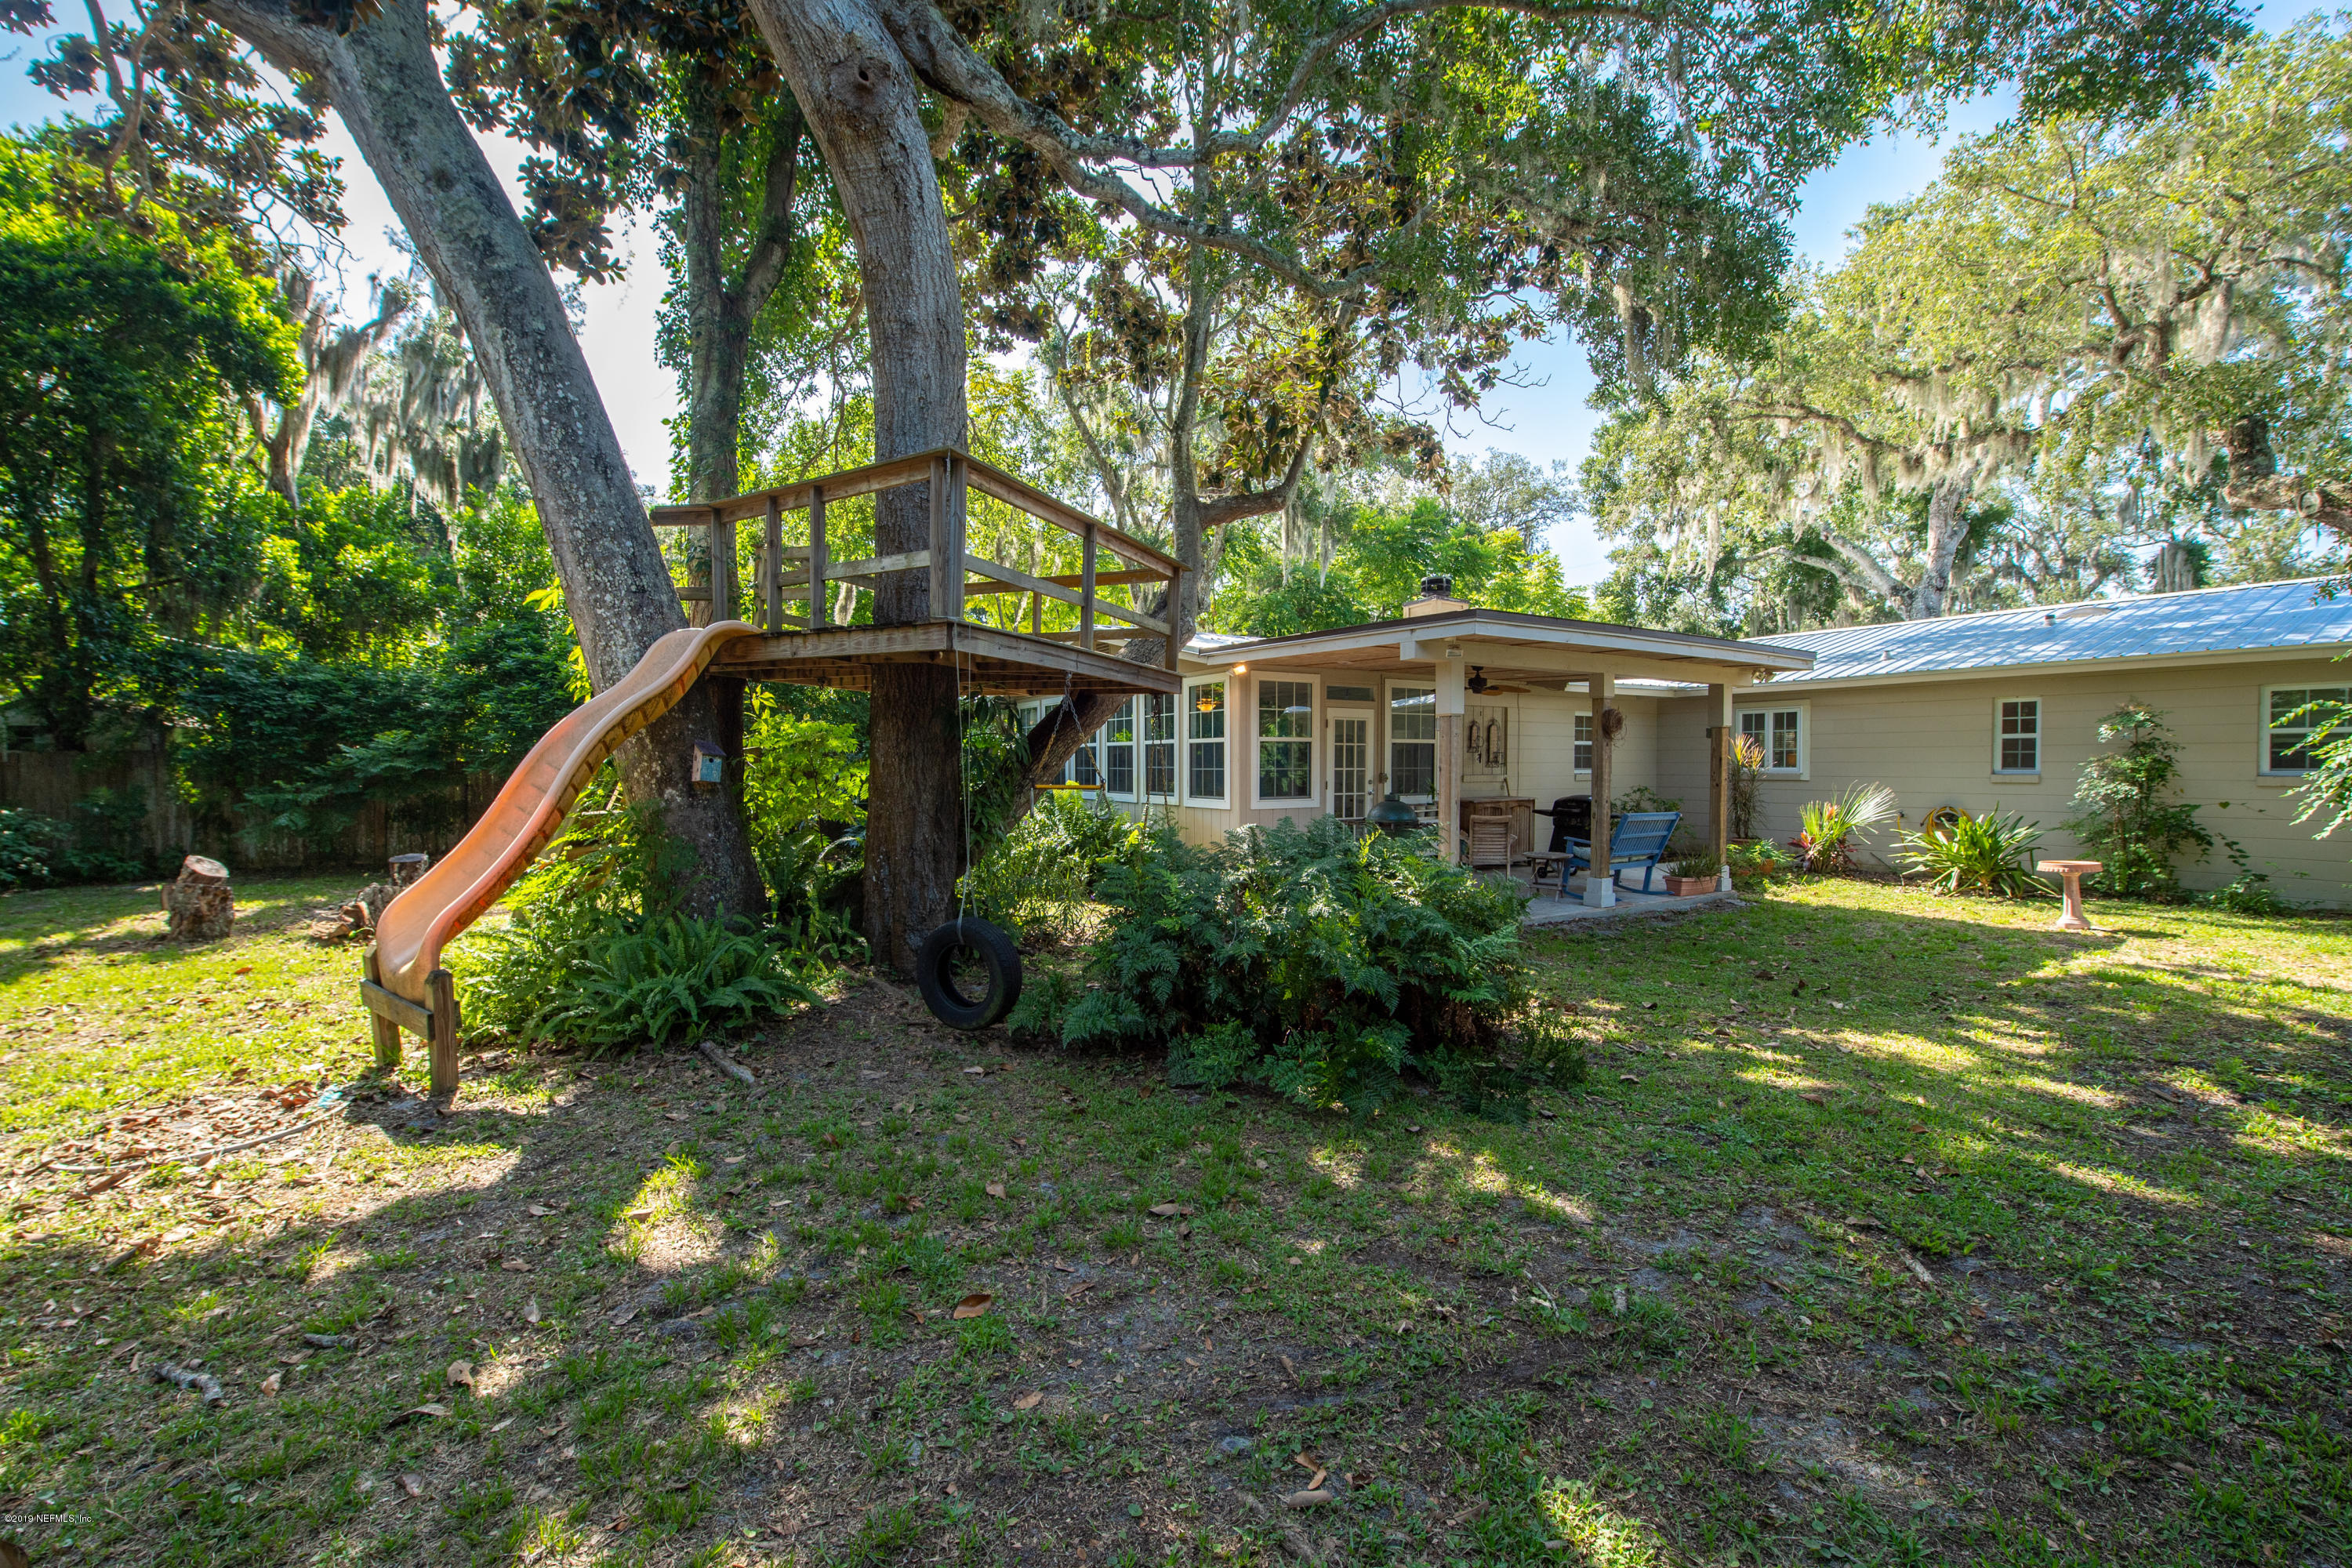 24 MARILYN AVE ST AUGUSTINE - 2